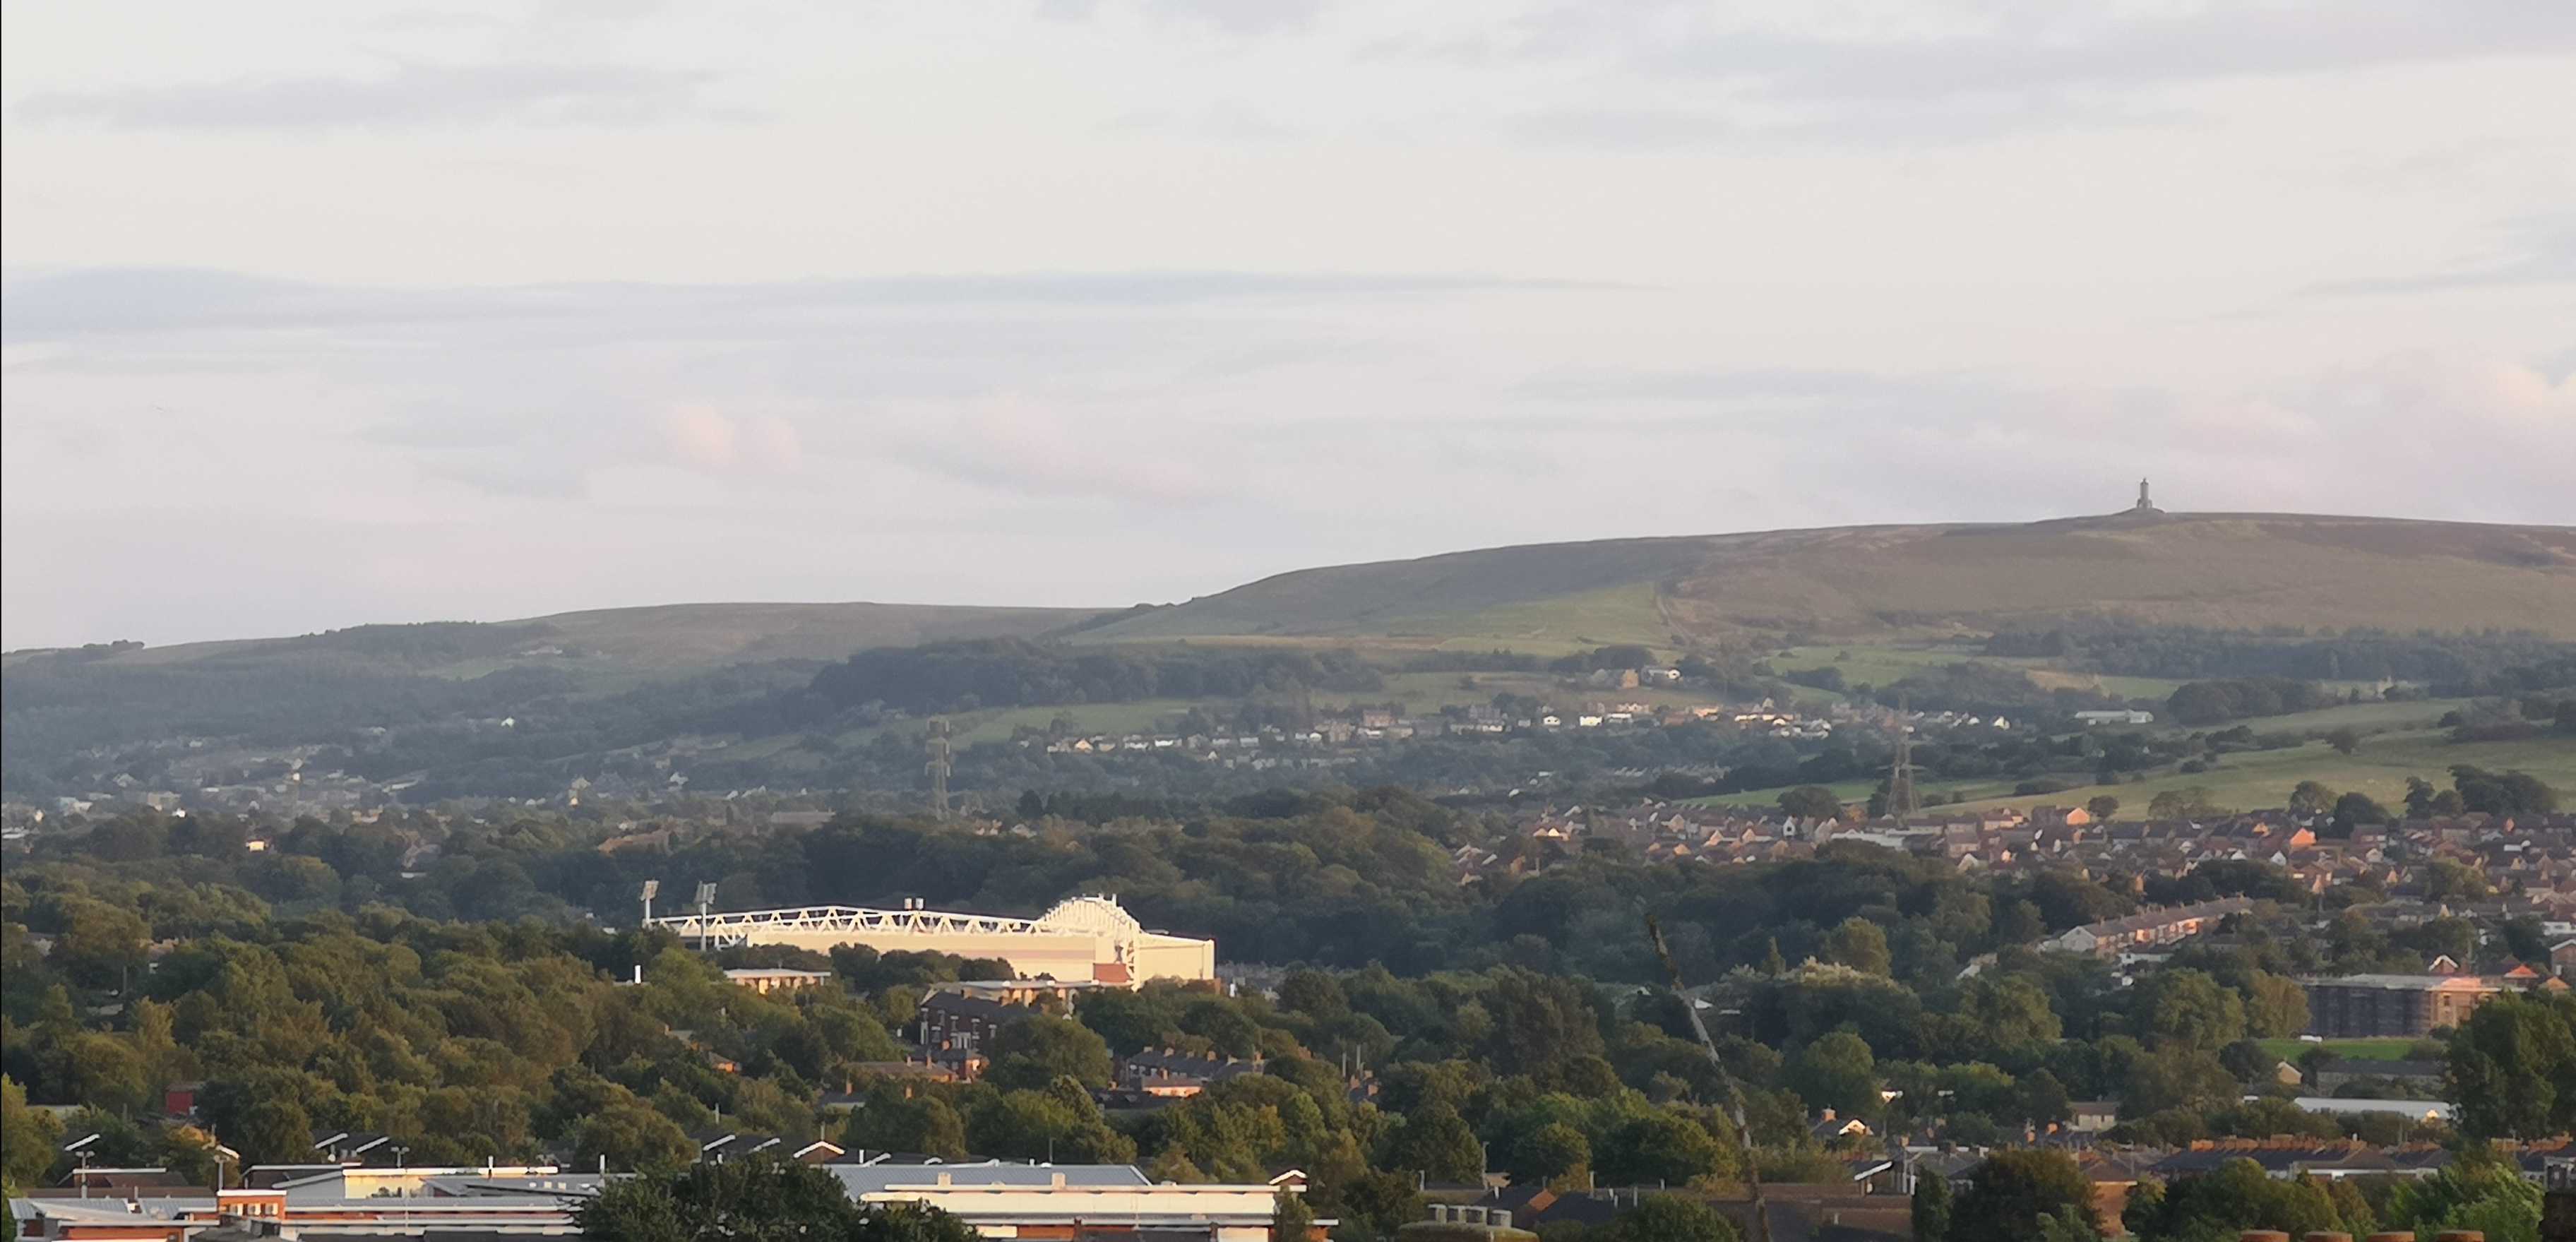 View of Blackburn from Chimneys